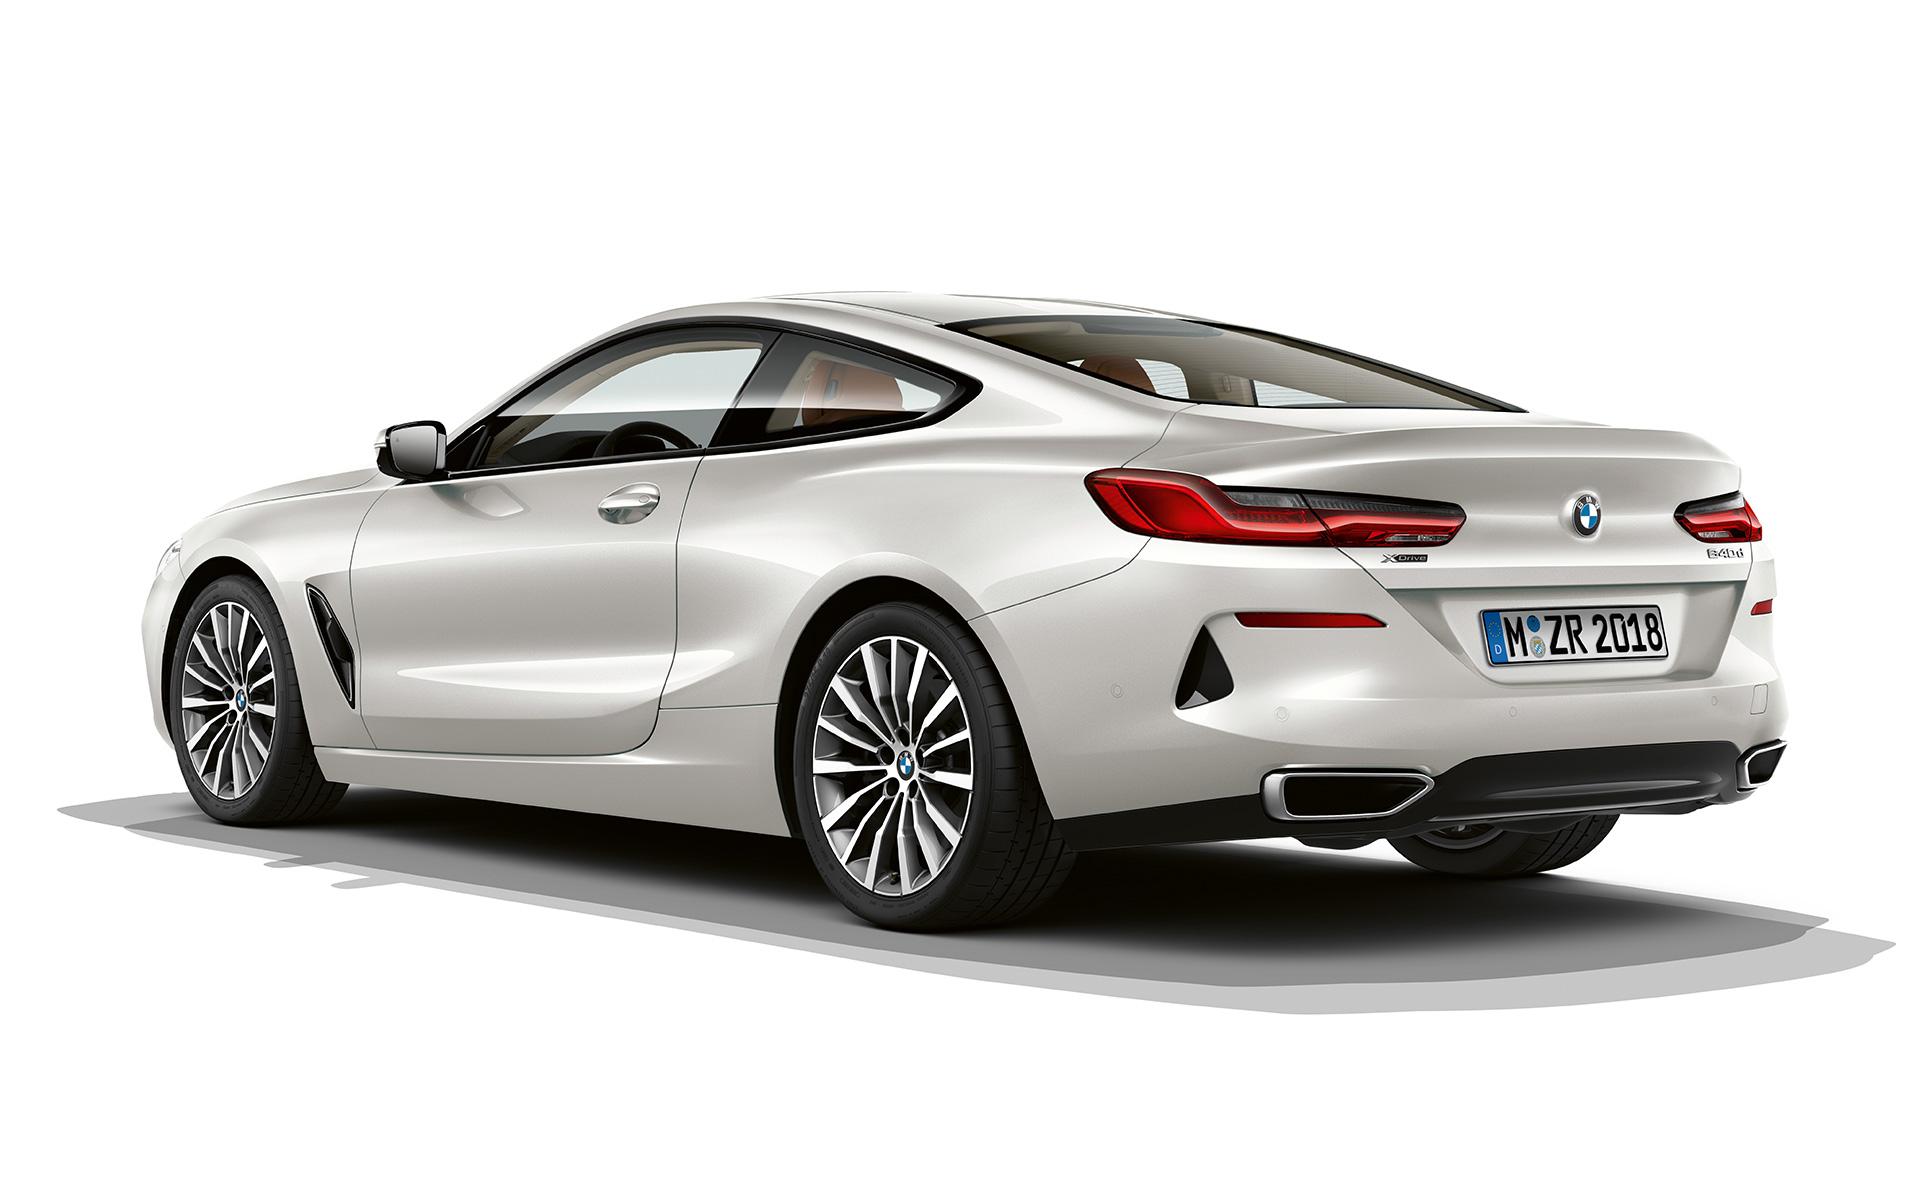 Still shot of the BMW 8 Series Coupé in Bluestone metallic against a white background.